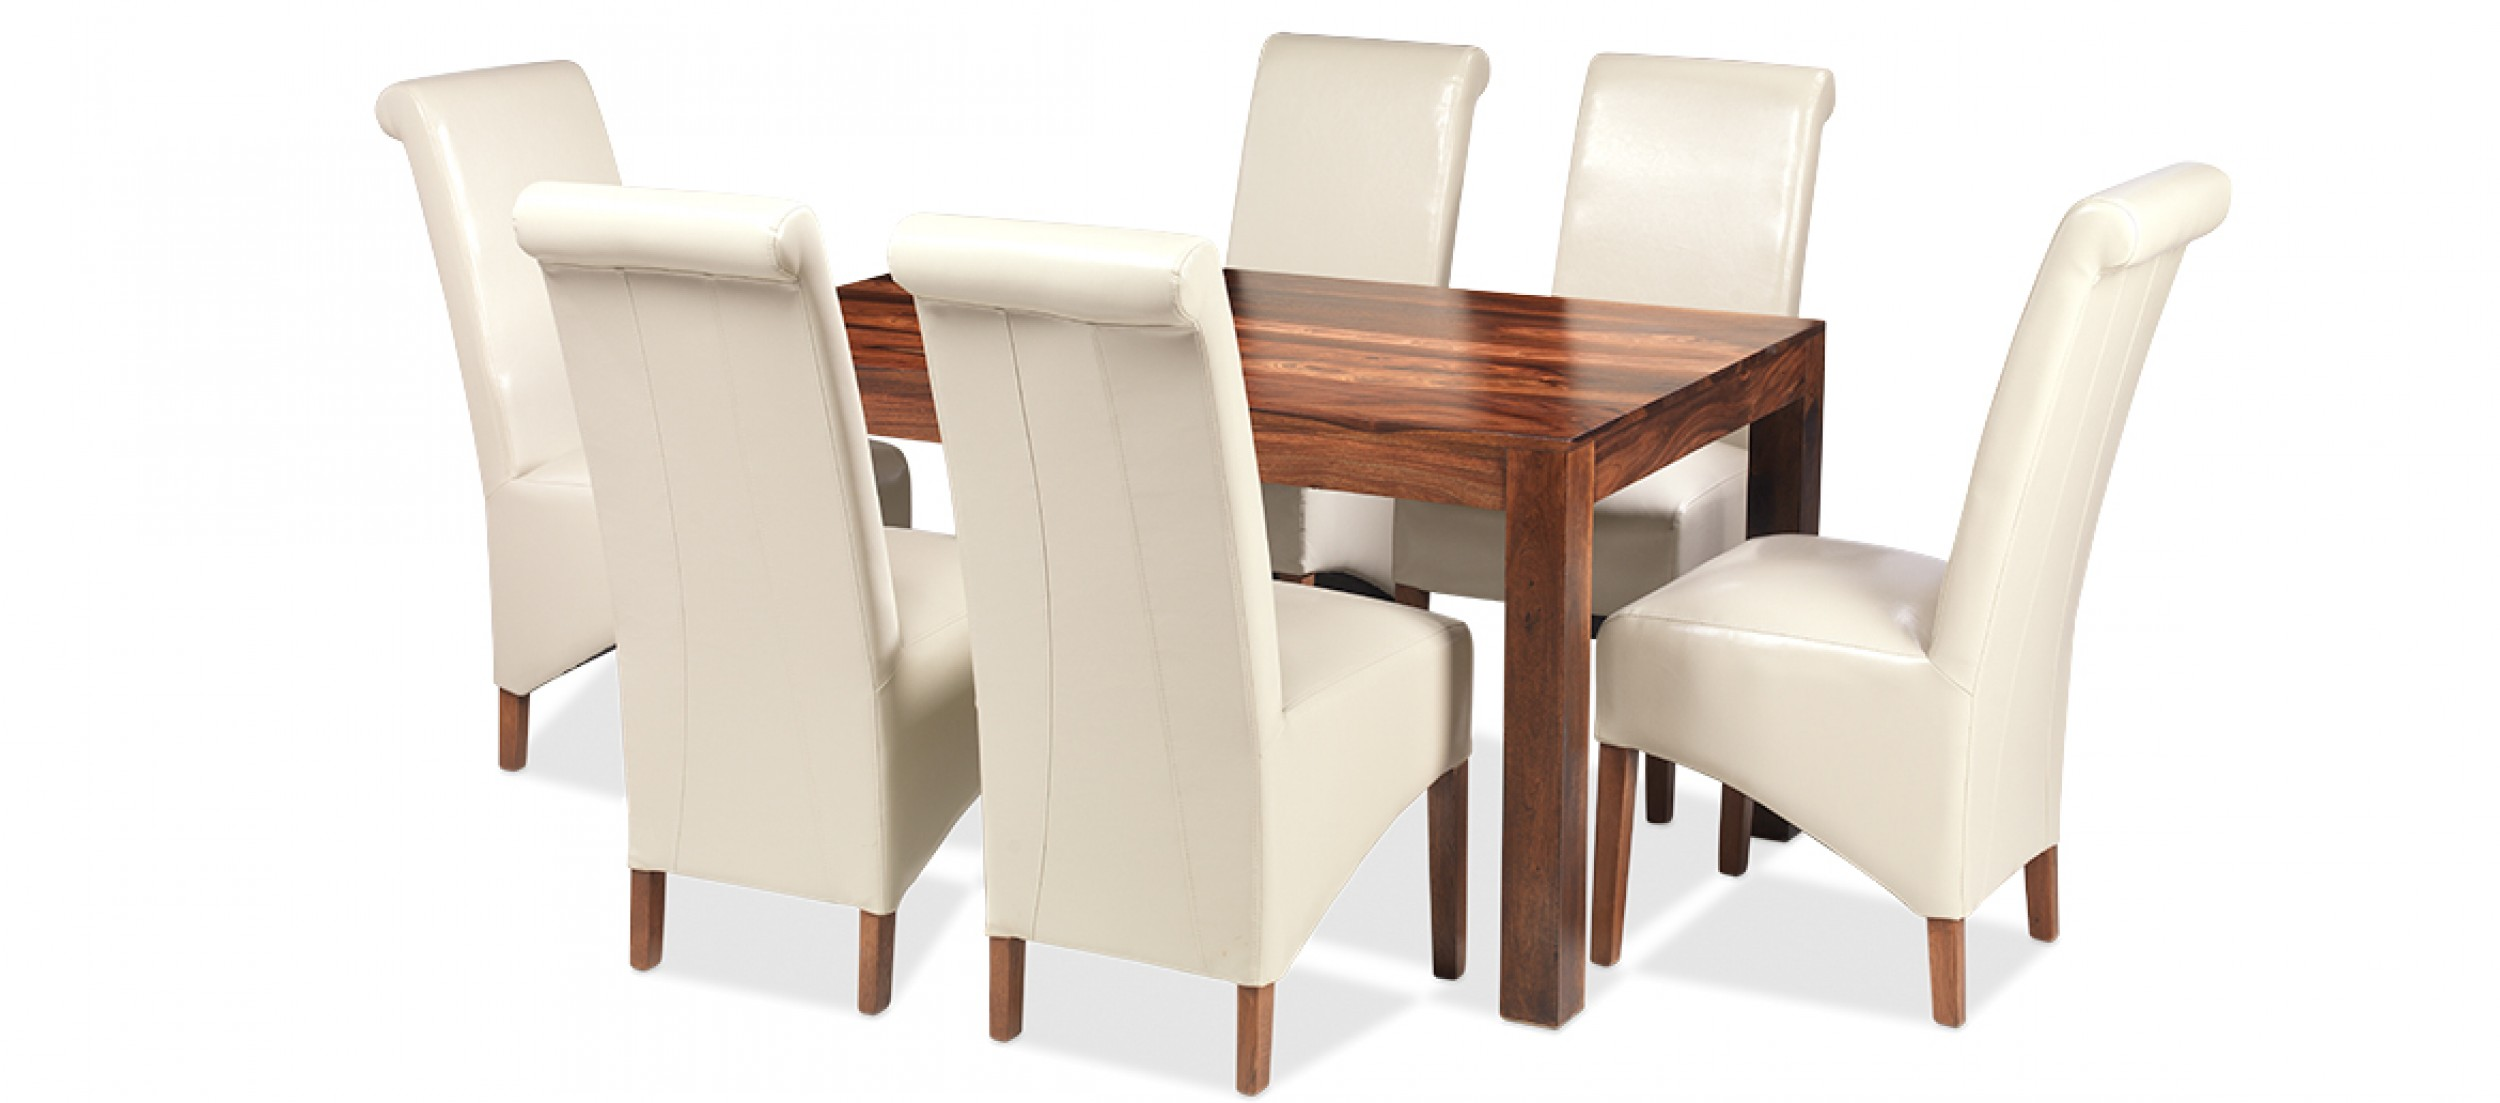 sc 1 st  Quercus Living & Cube Sheesham 140 cm Dining Table and 6 Chairs | Quercus Living